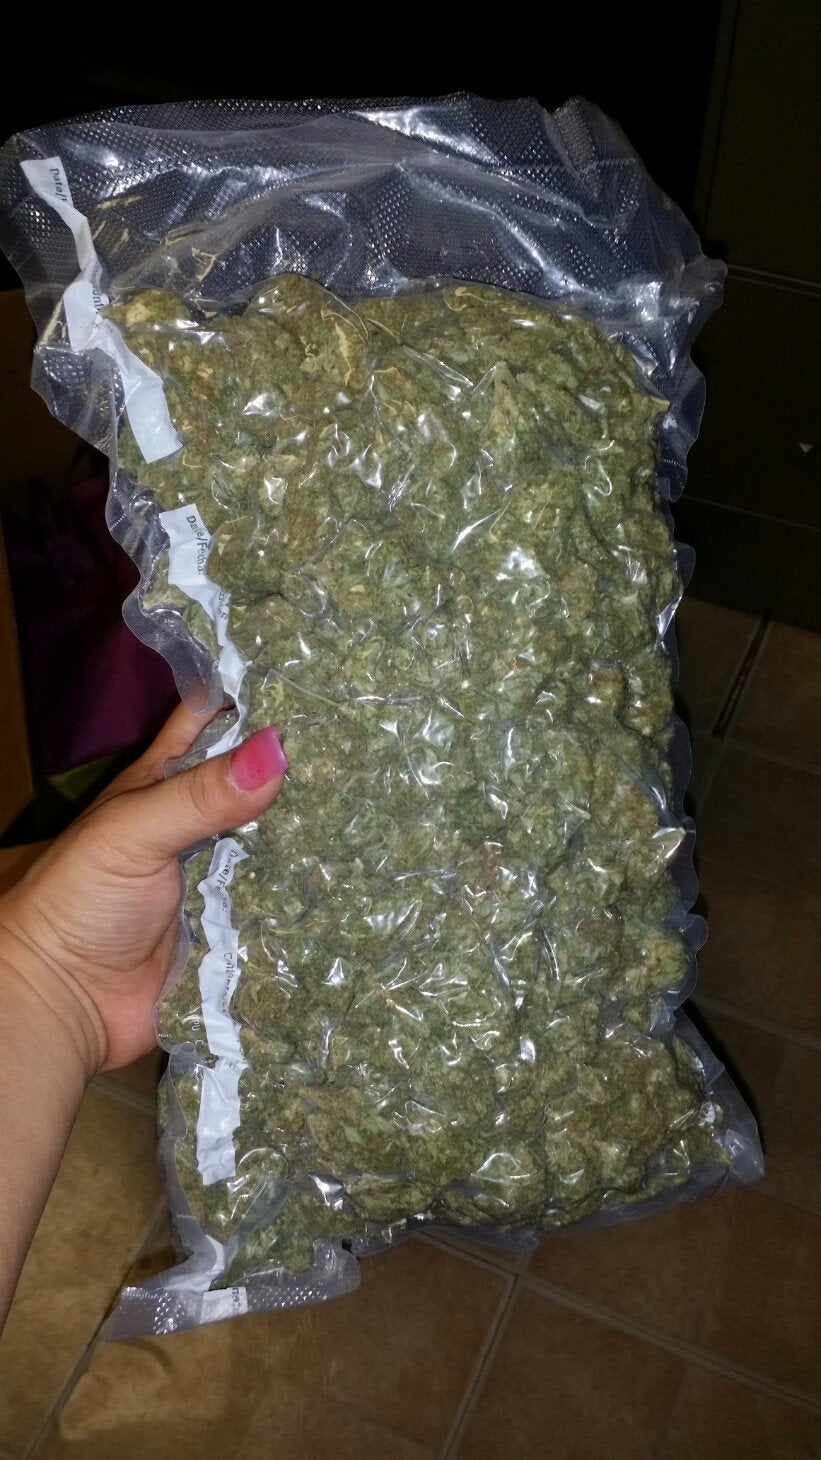 1 pound bag of weed